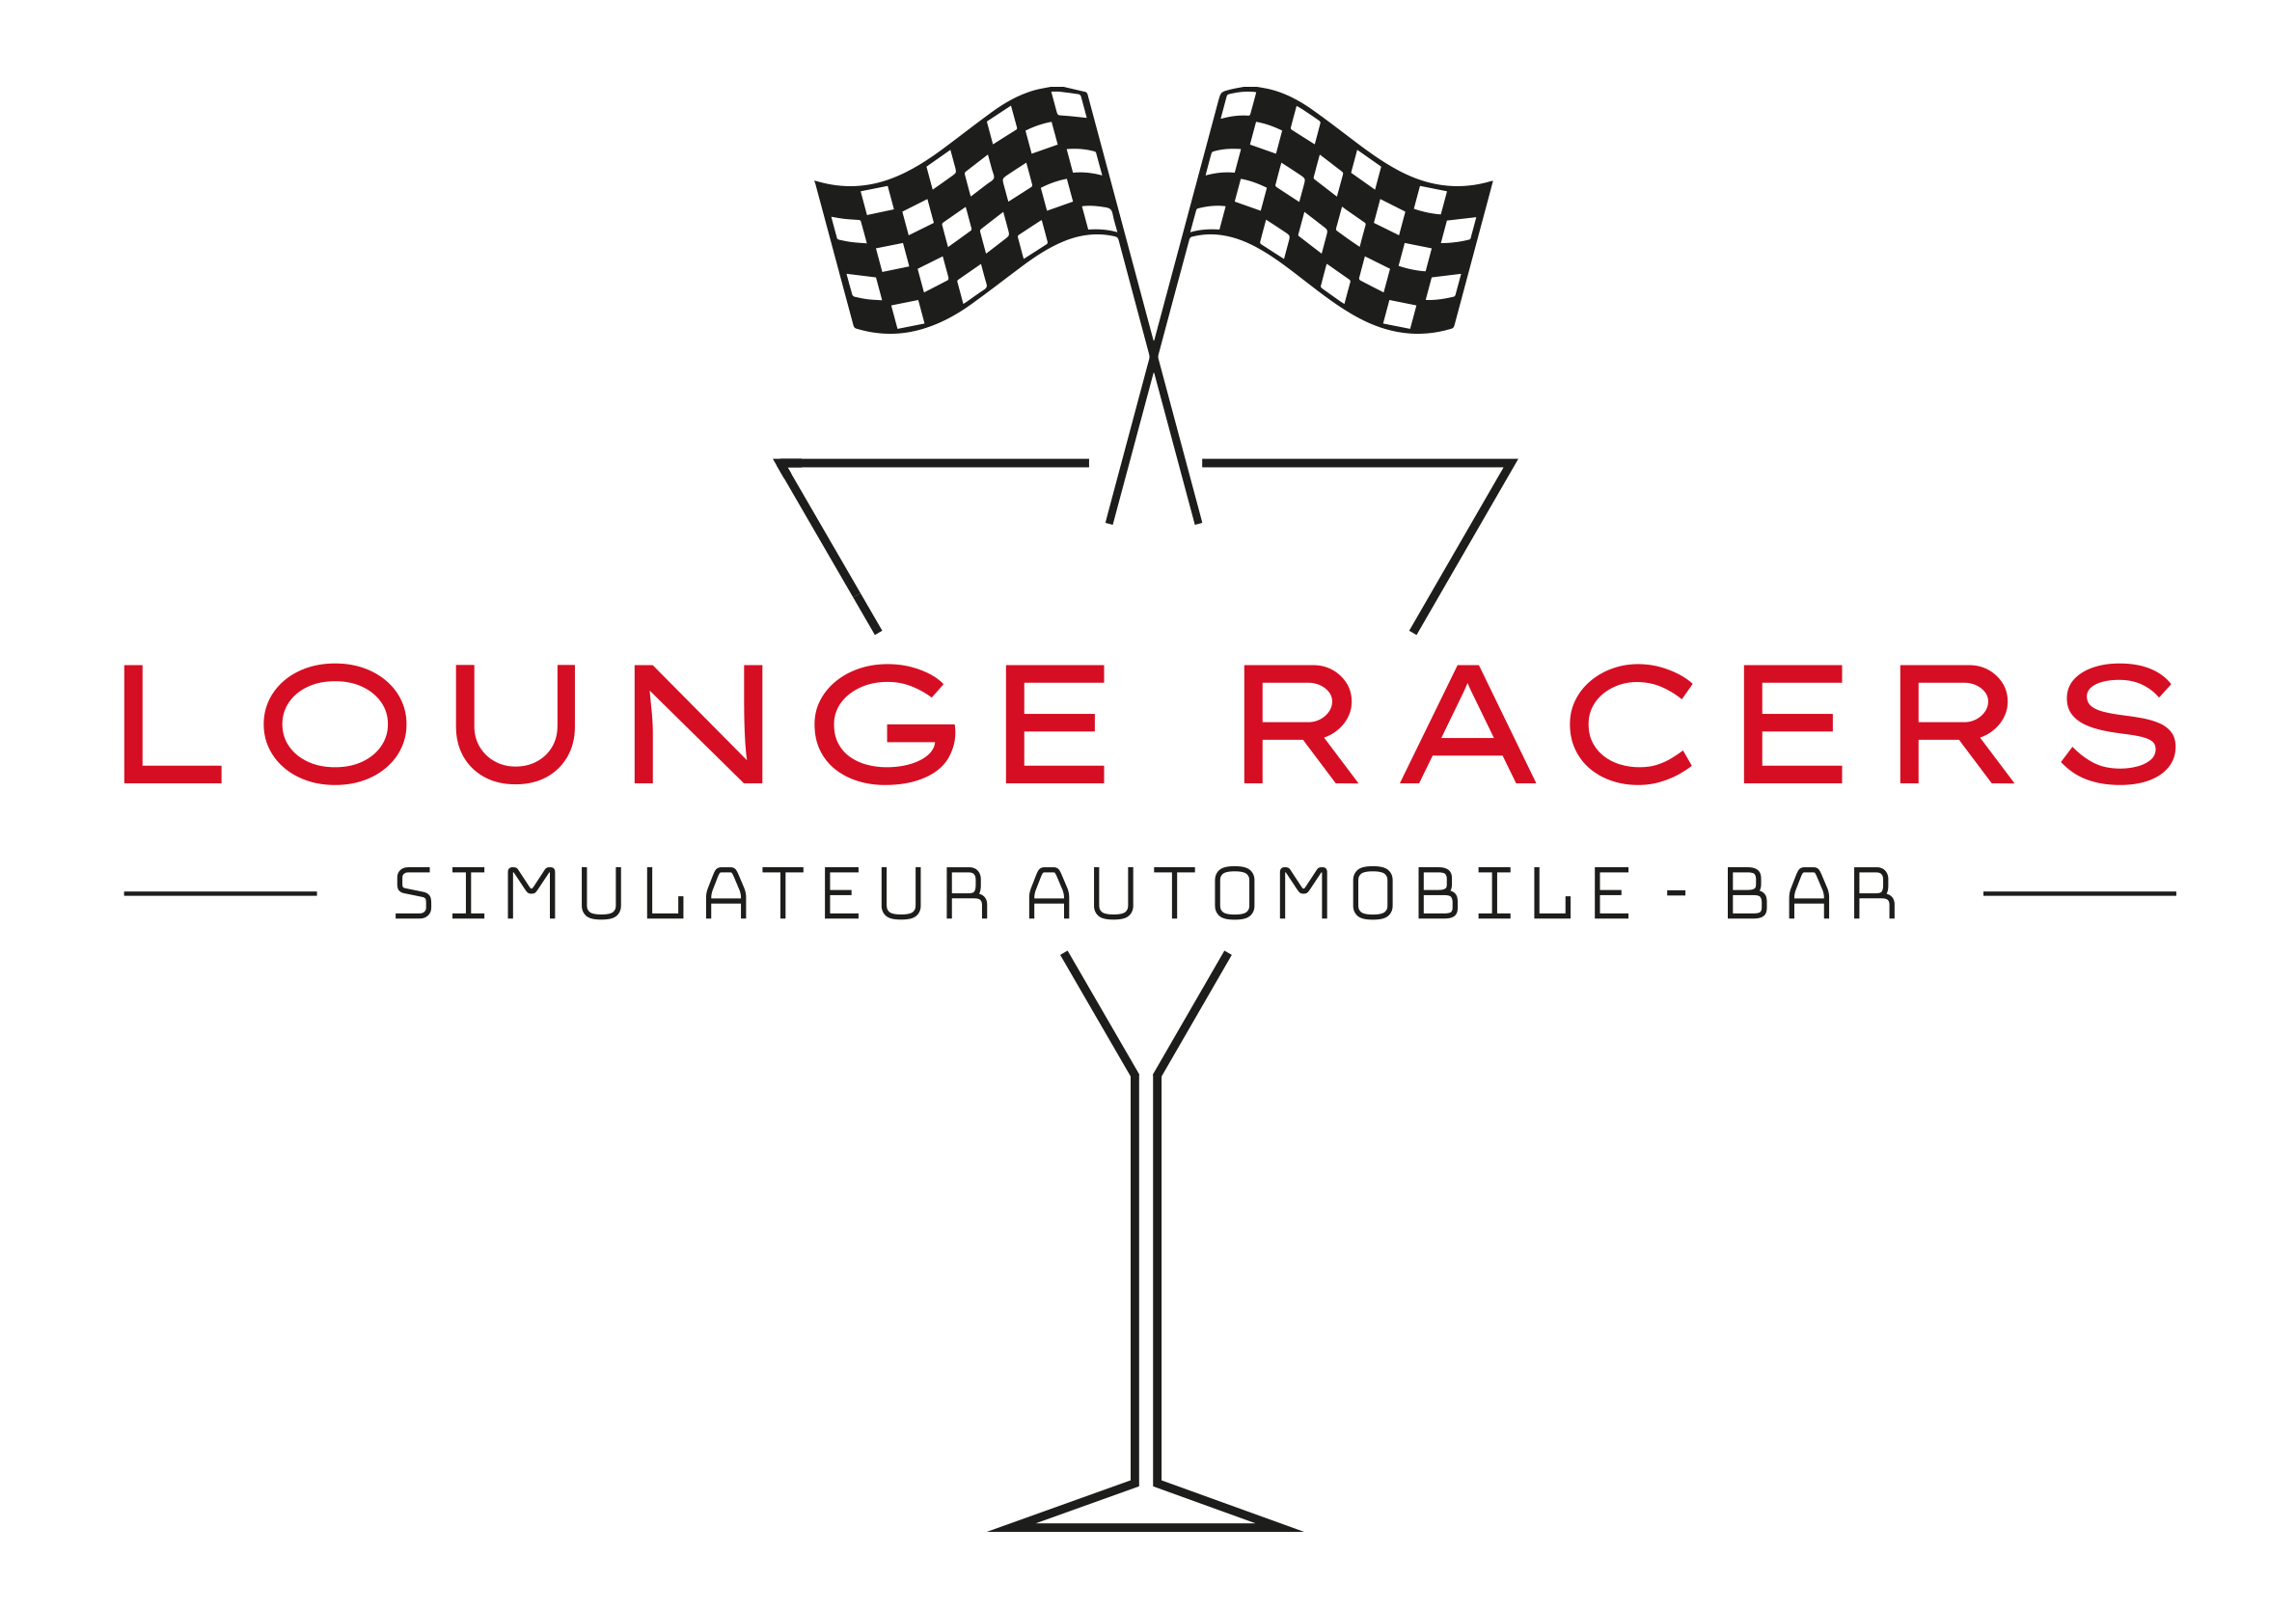 Lounge Racers